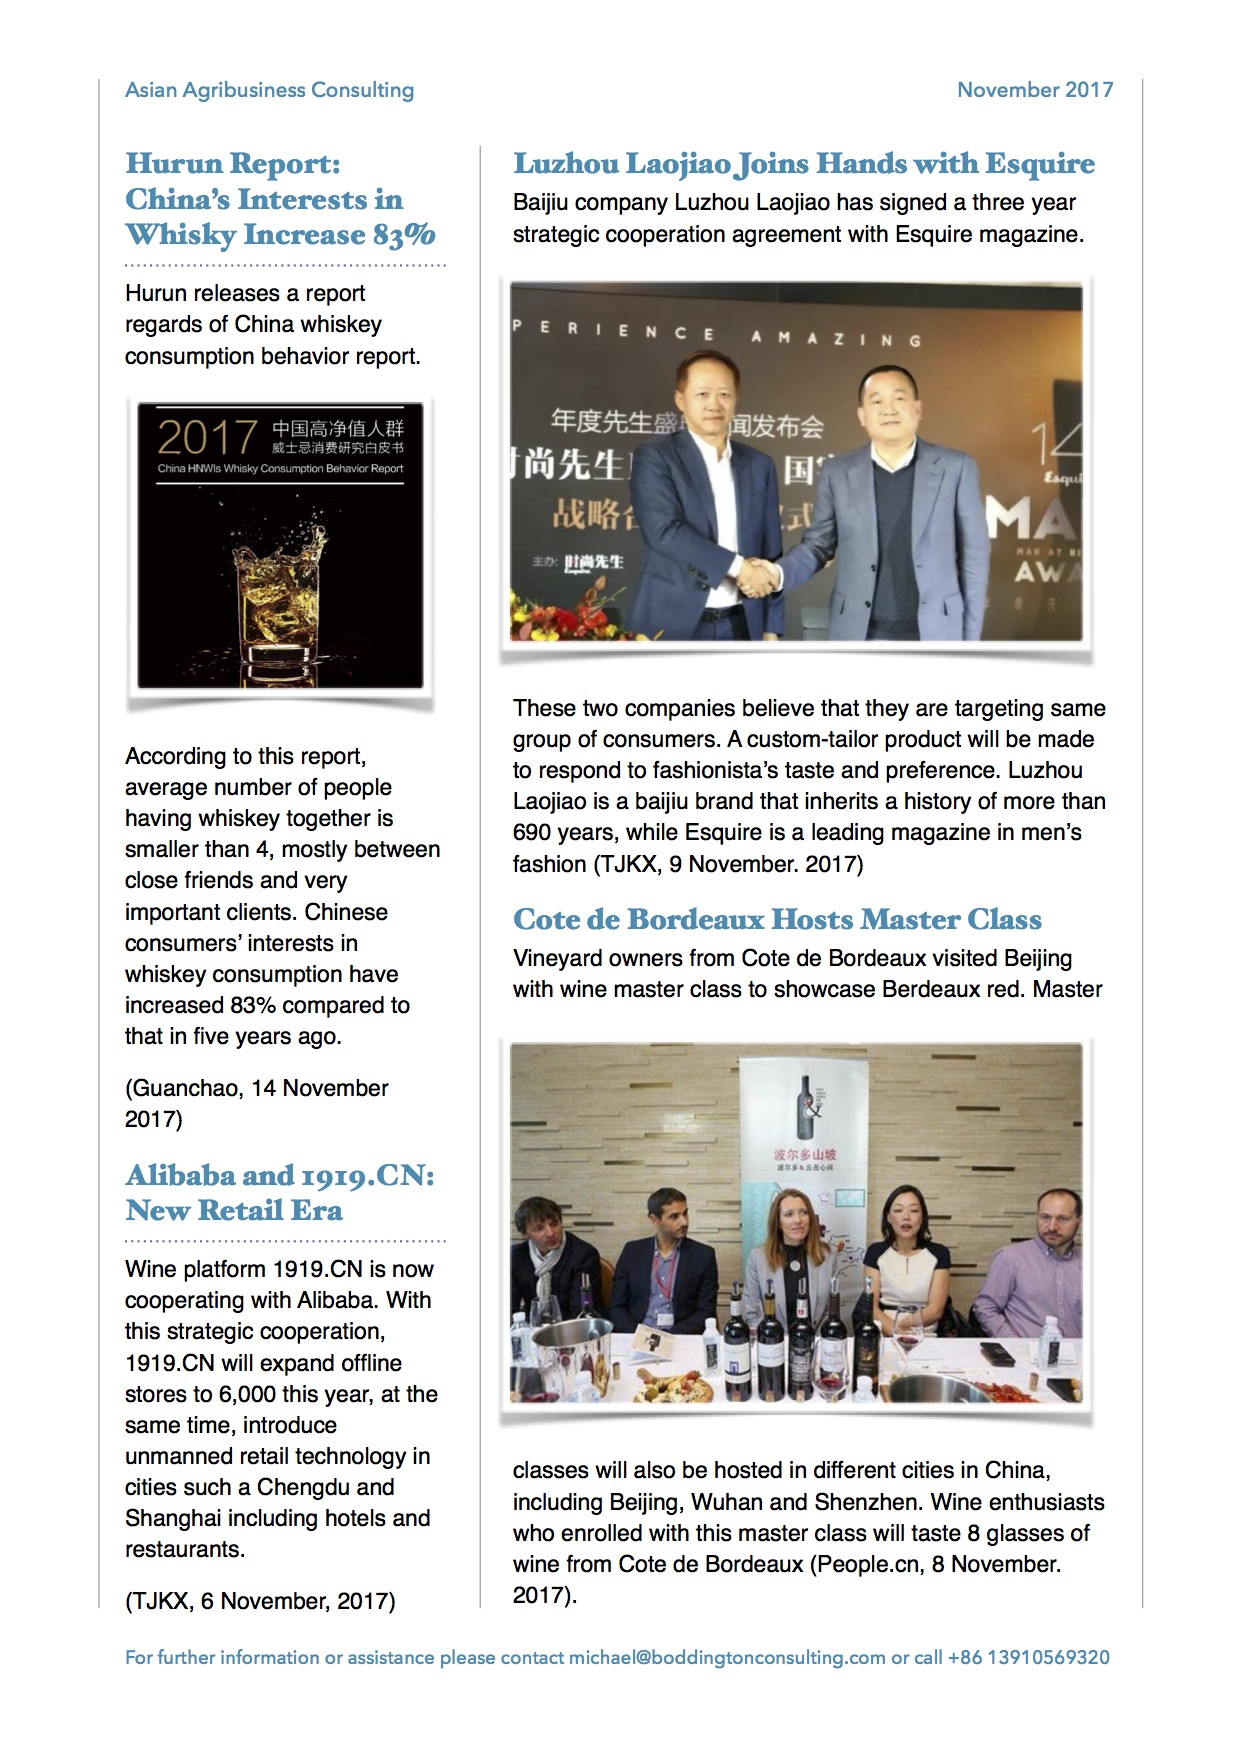 AACs November Wine and Spirits Newsletter 2